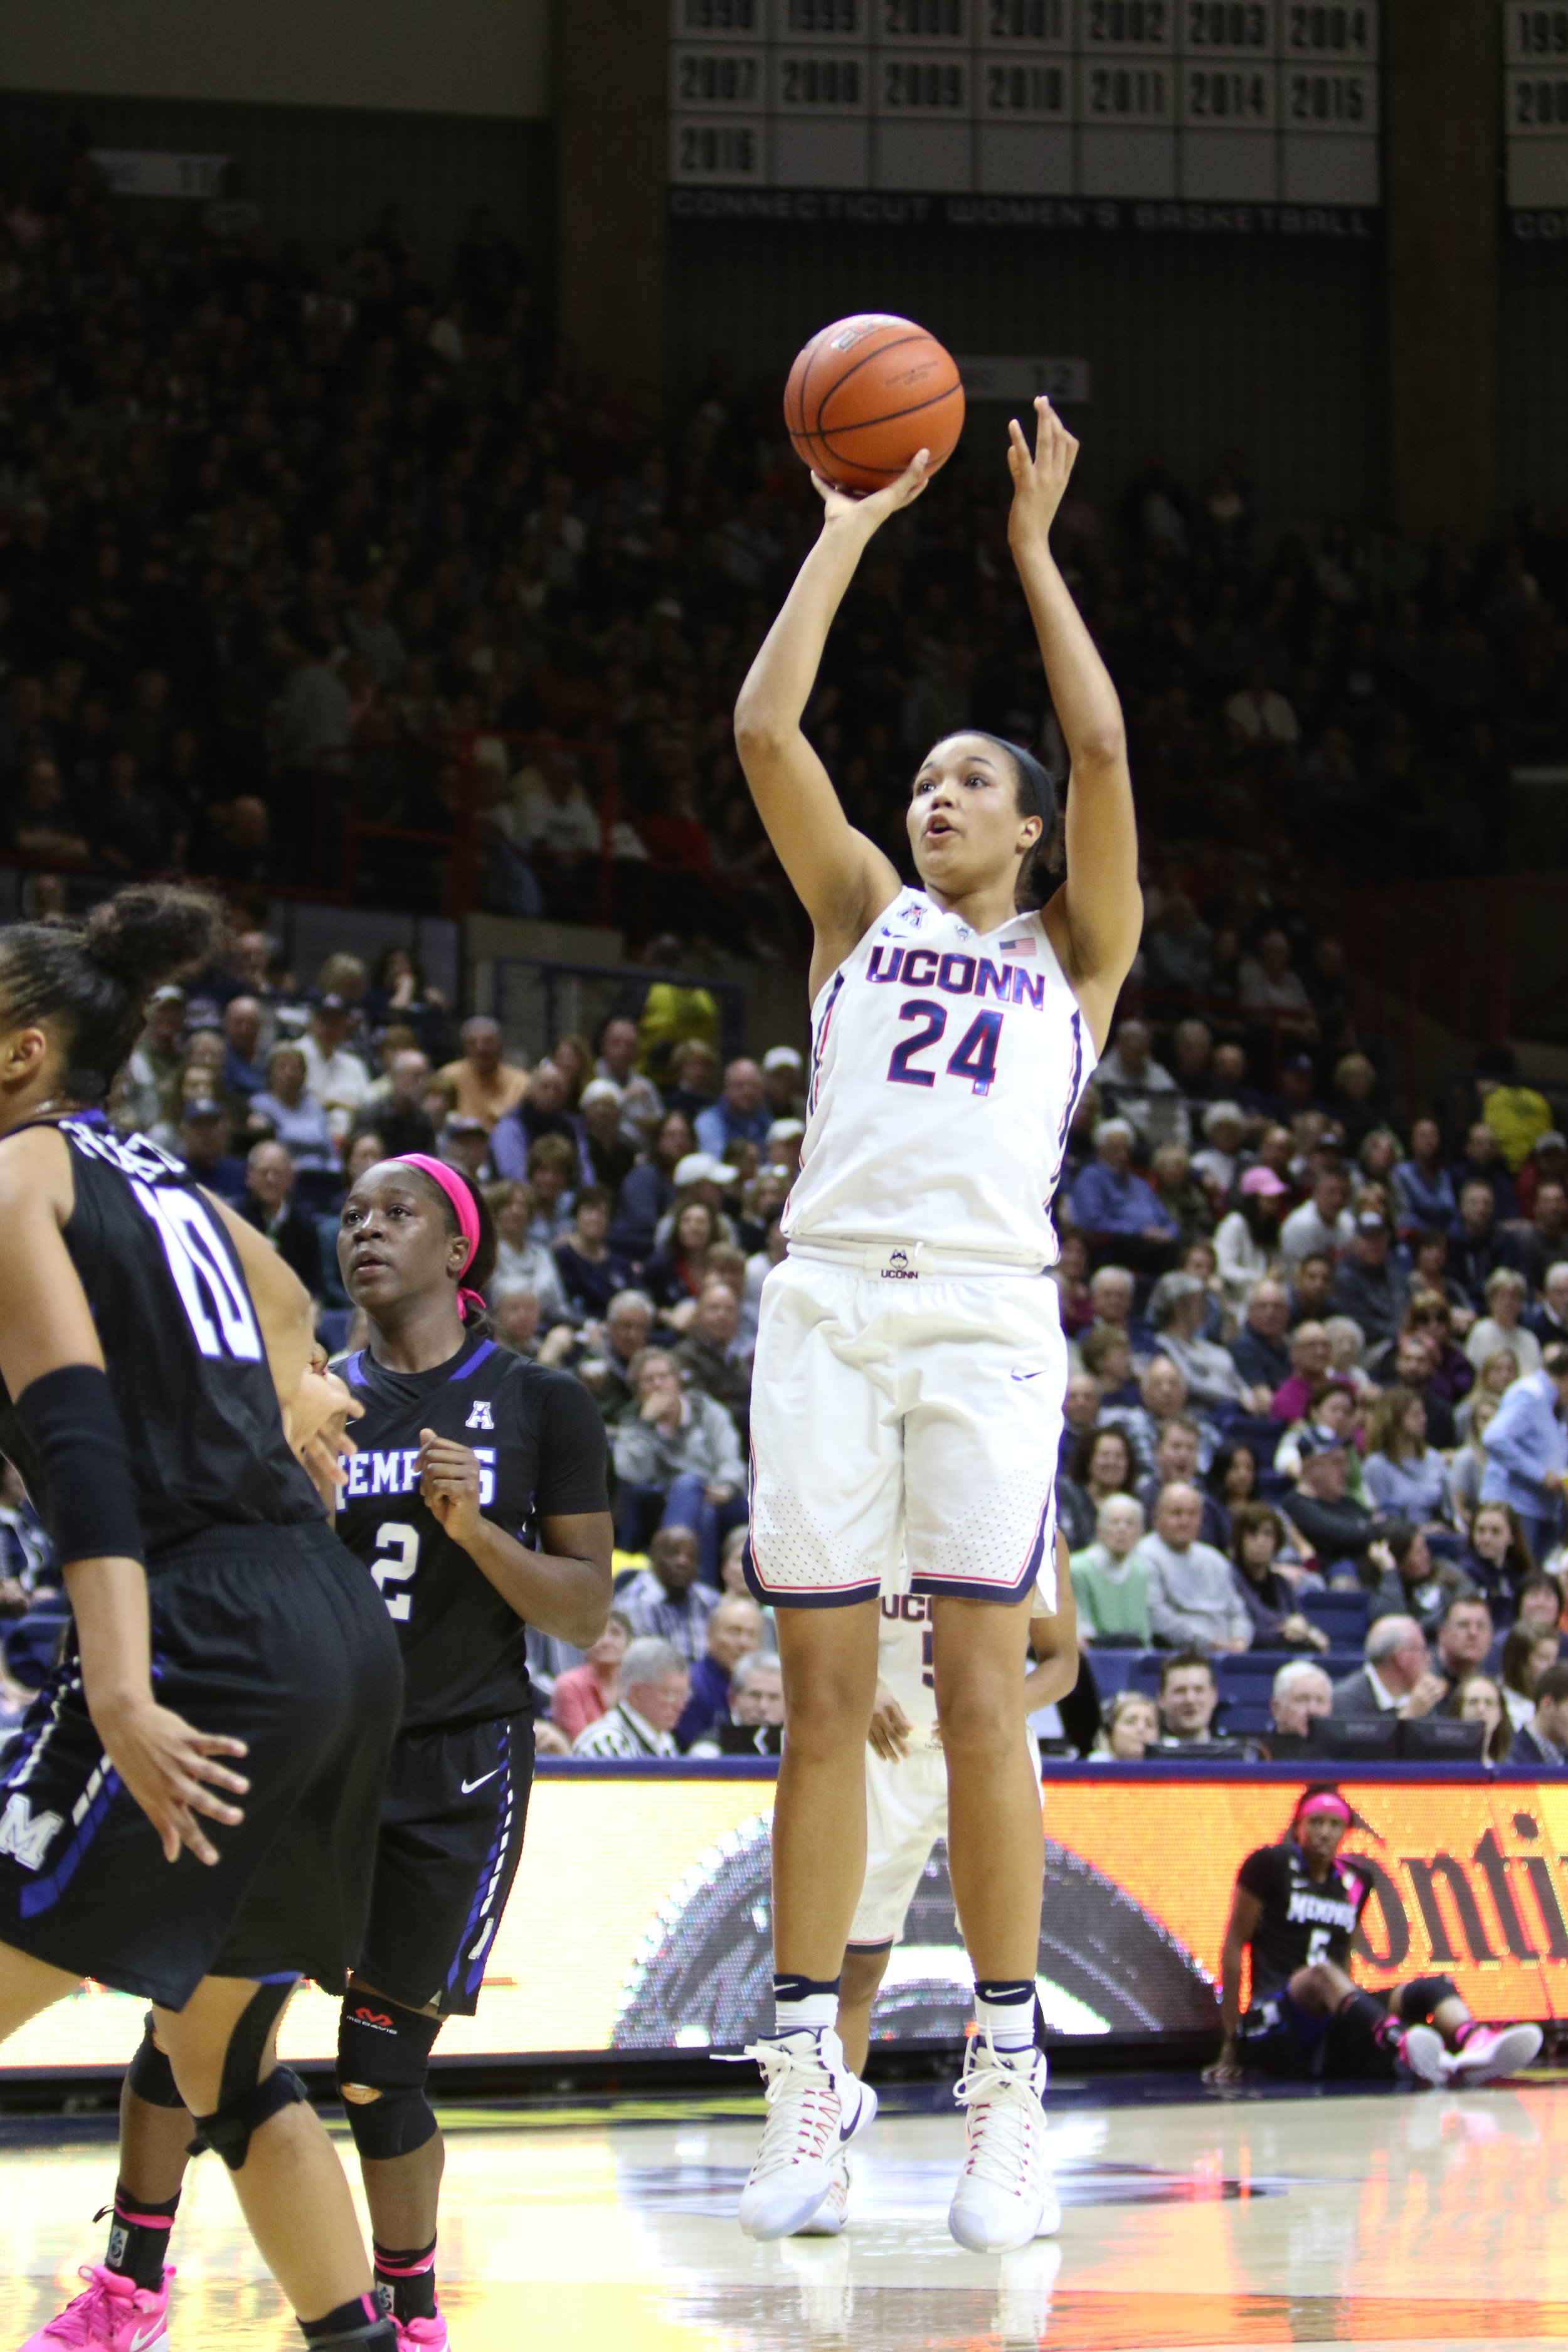 Napheesa Collier shoots a shot during the Huskies' 91-48 win over Memphis on Feb. 25, 2017. (Jackson Haigis/The Daily Campus)